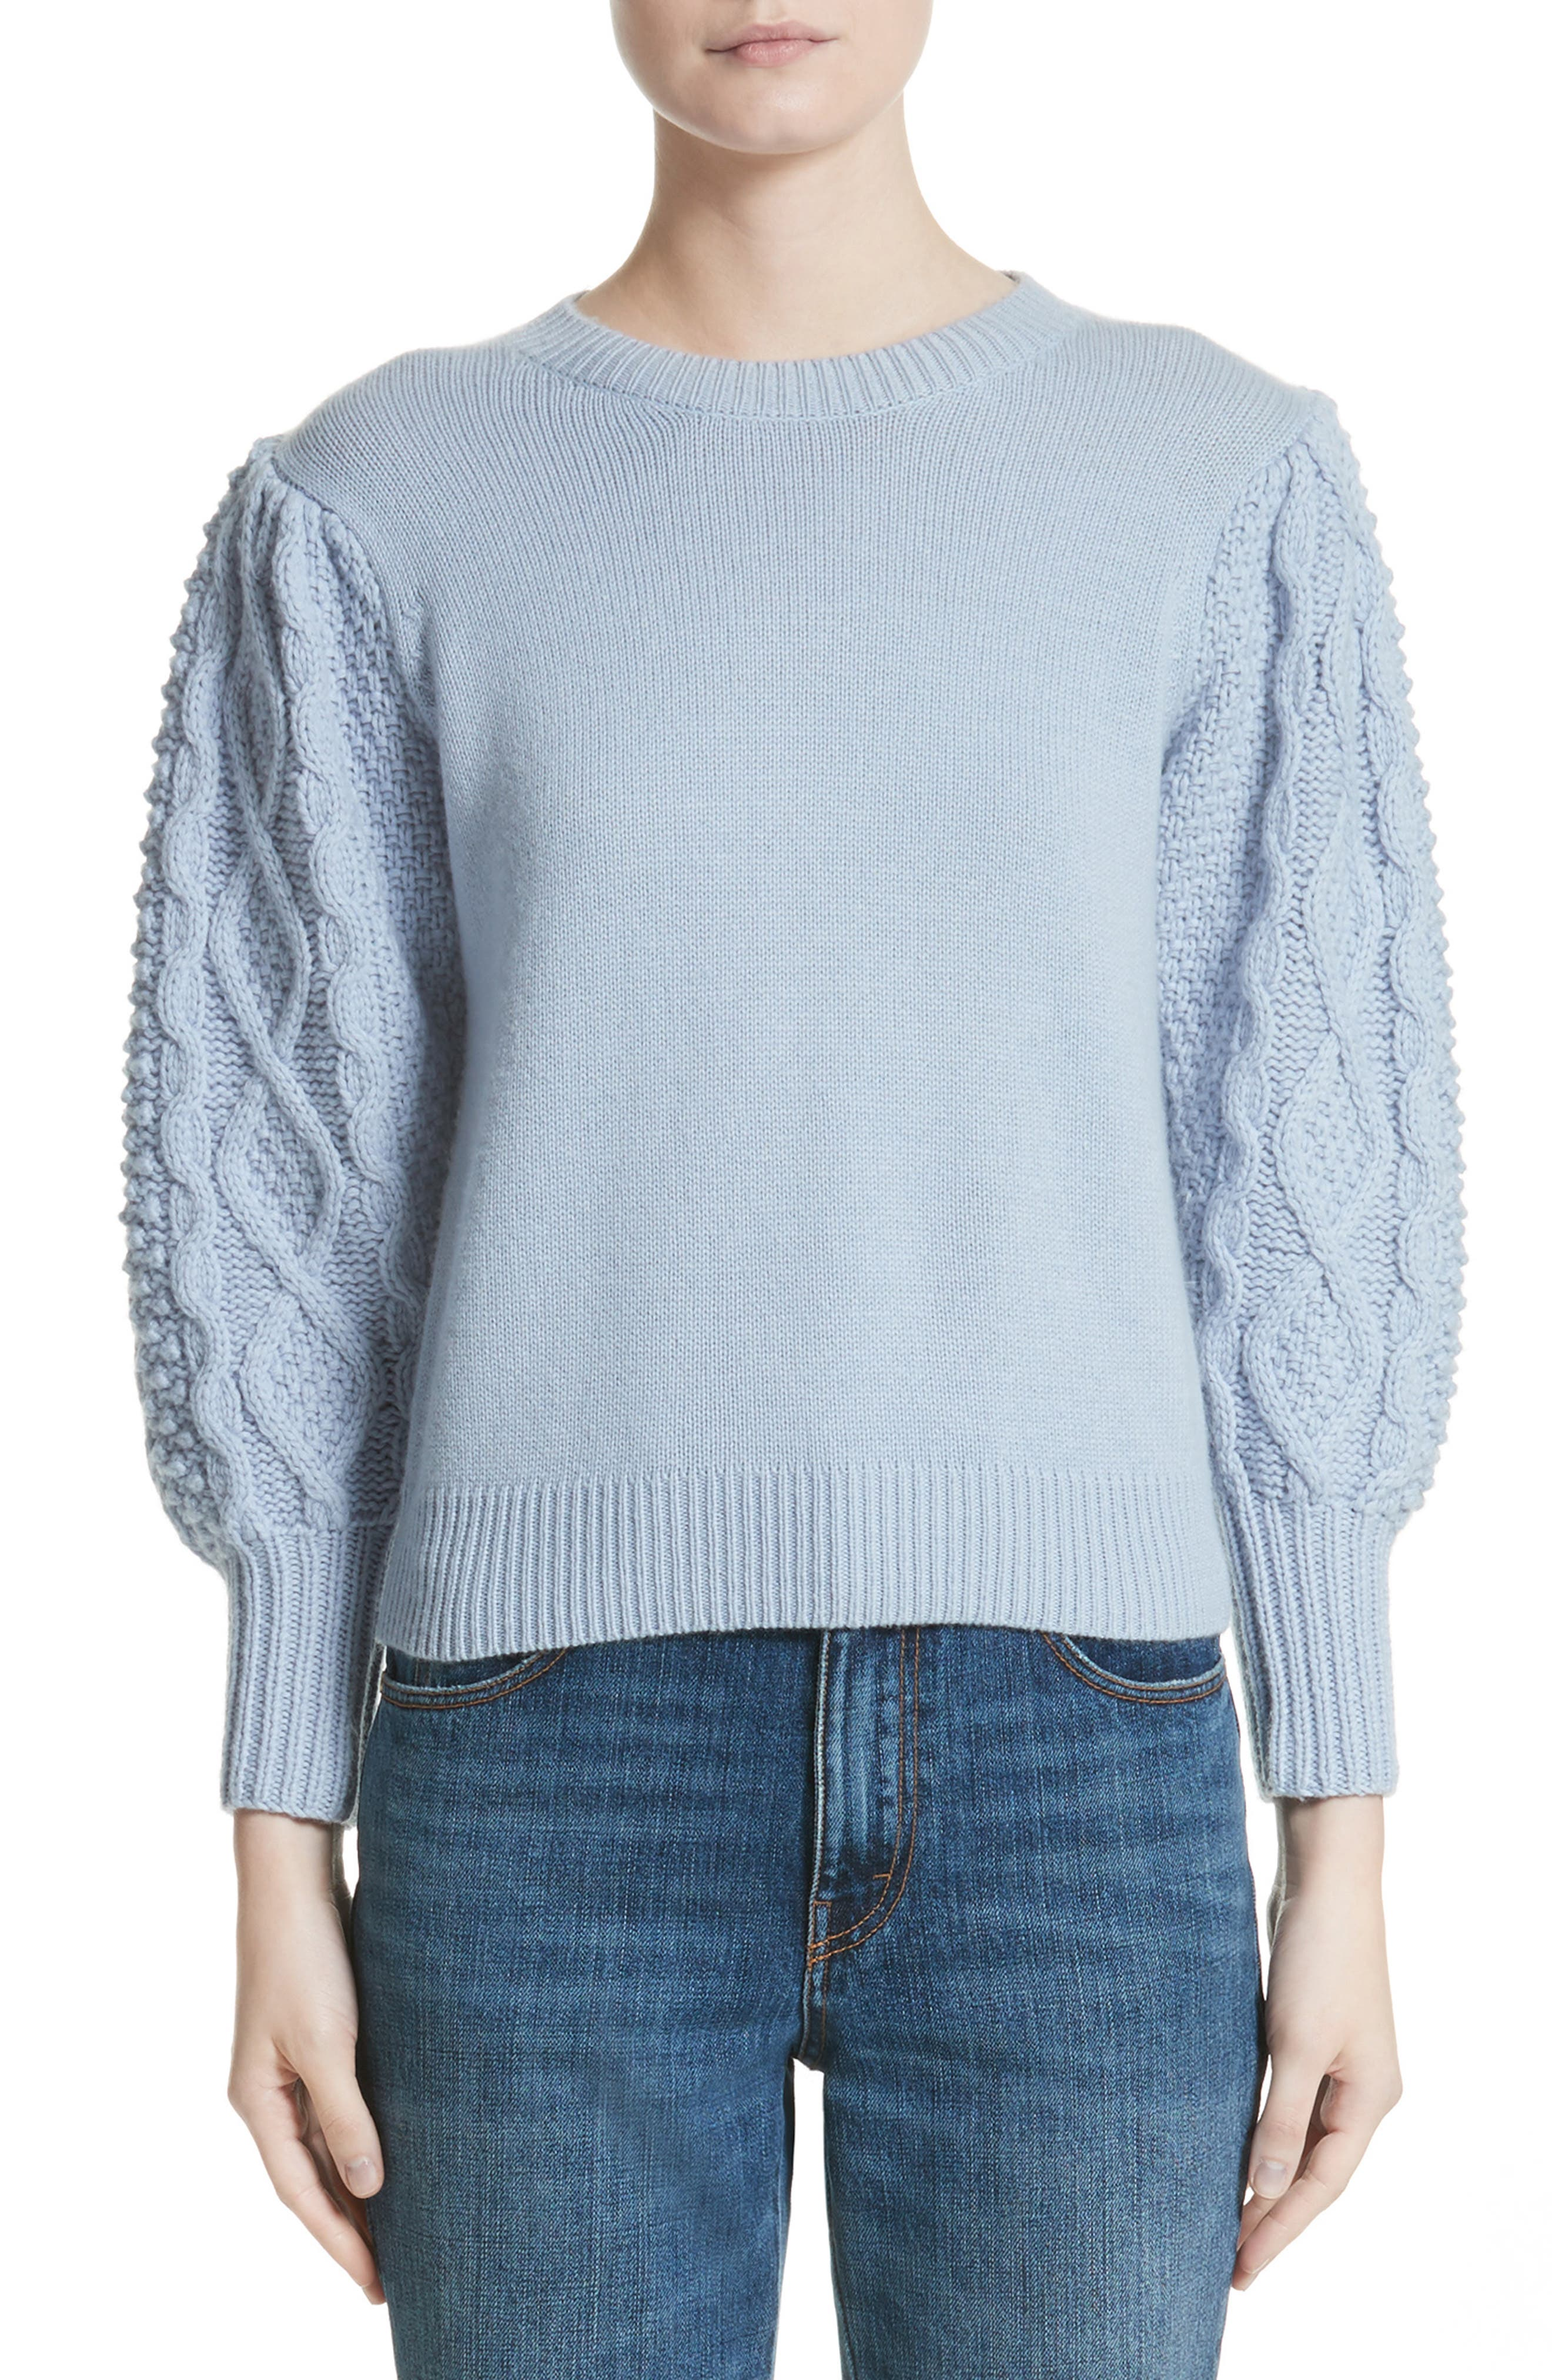 Puff Sleeve Wool & Cashmere Sweater,                             Main thumbnail 1, color,                             400